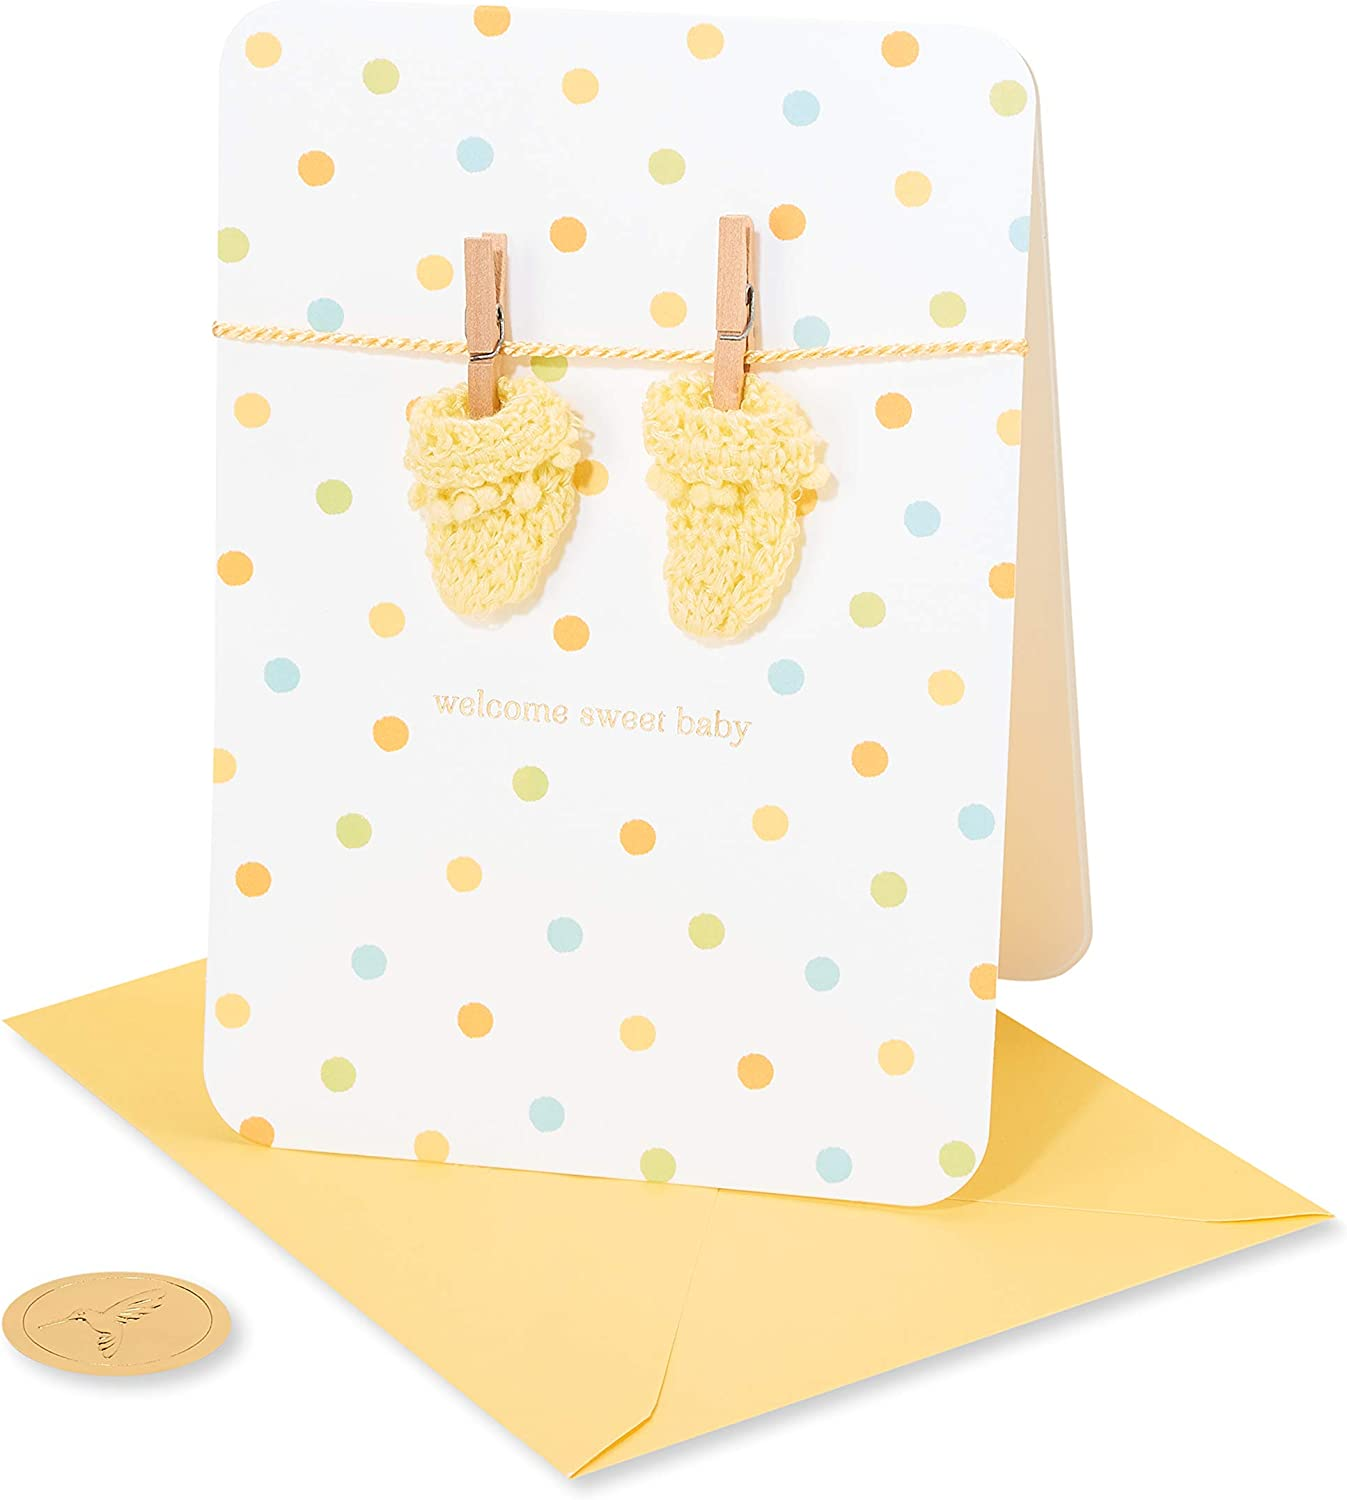 Papyrus Baby Shower Card (Warmest Welcome)